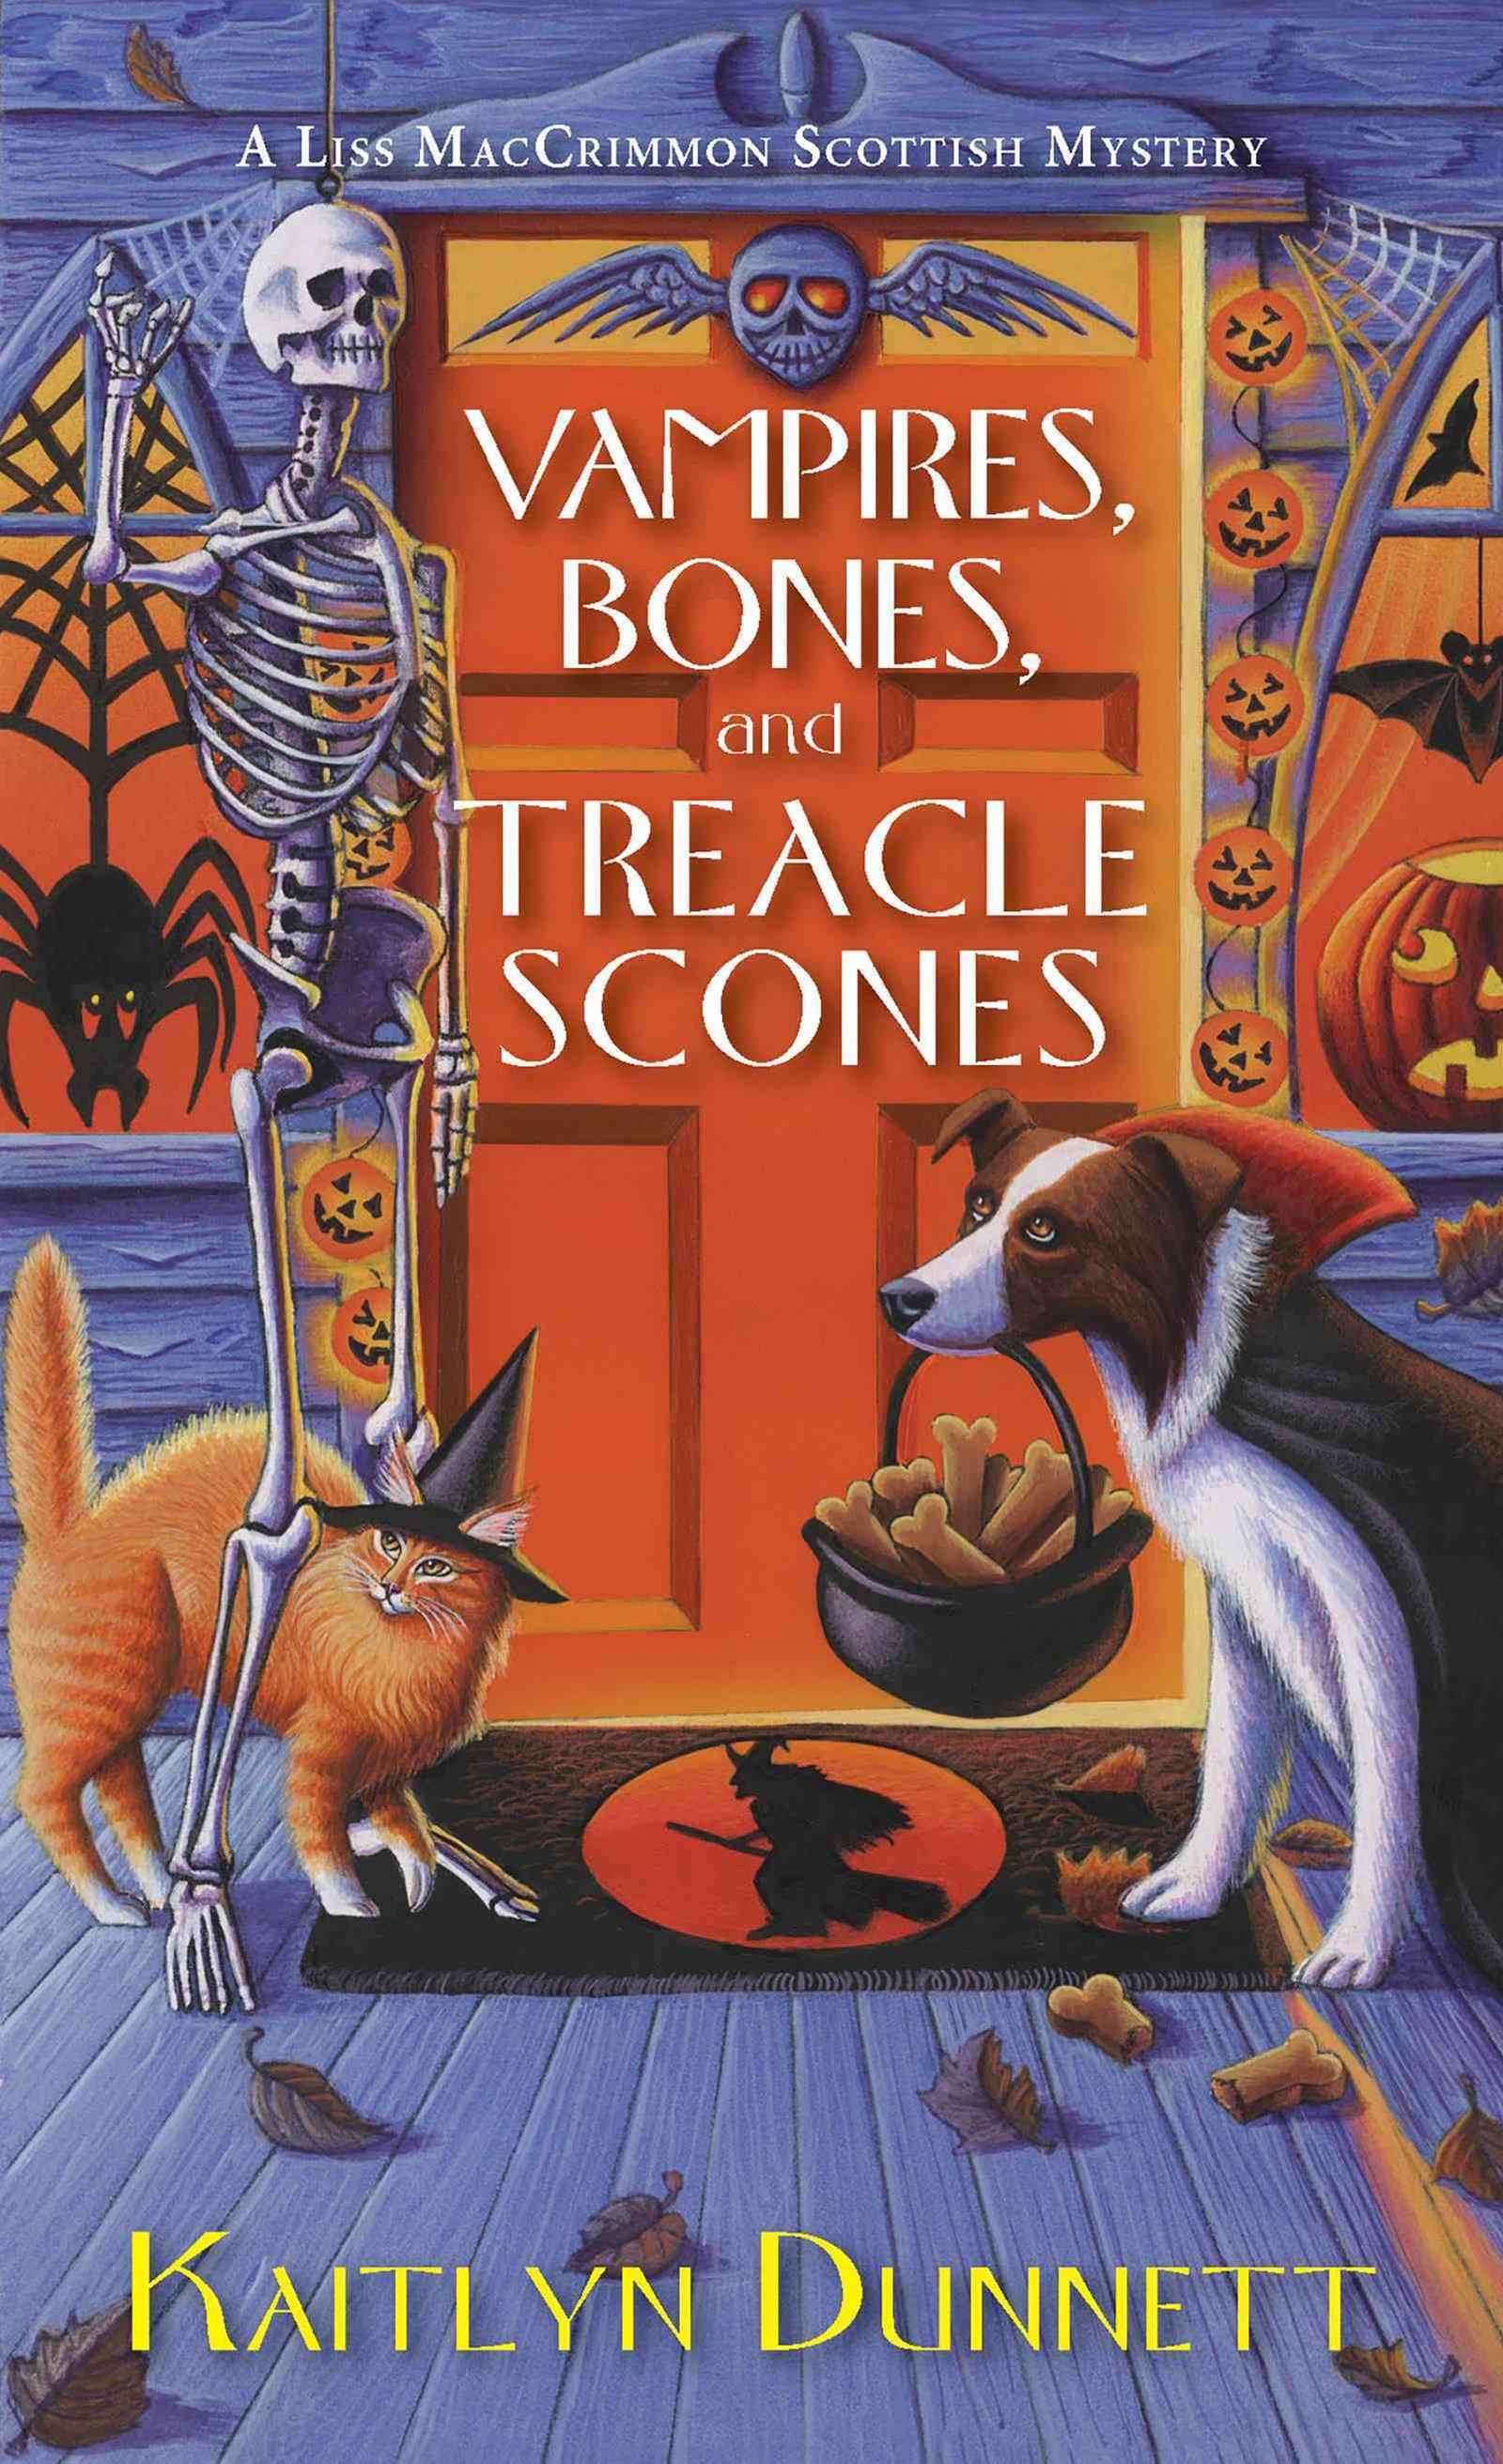 Vampires, Bones and Treacle Scones